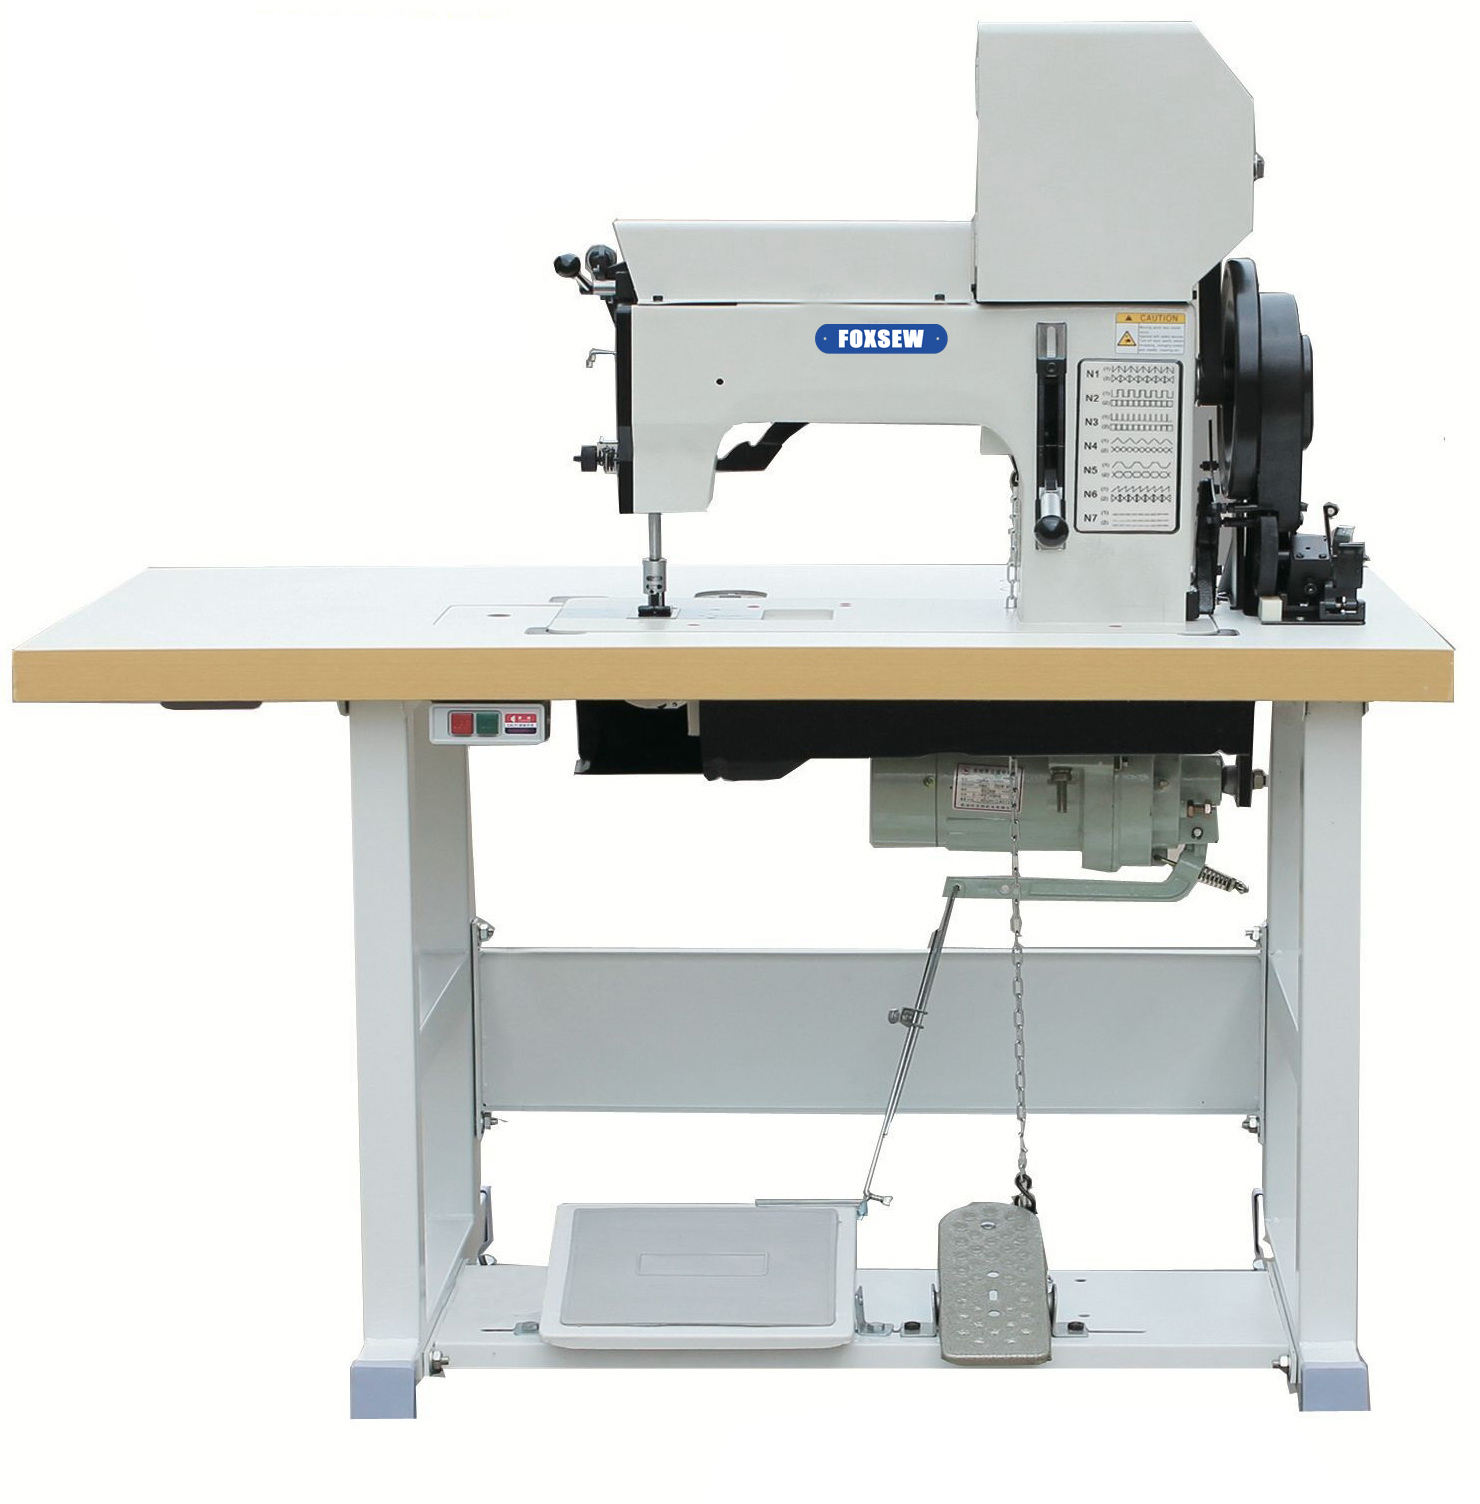 KD-204-105 Cams Controlled Heavy Duty Thick Thread Ornamental Stitch Sewing Machine